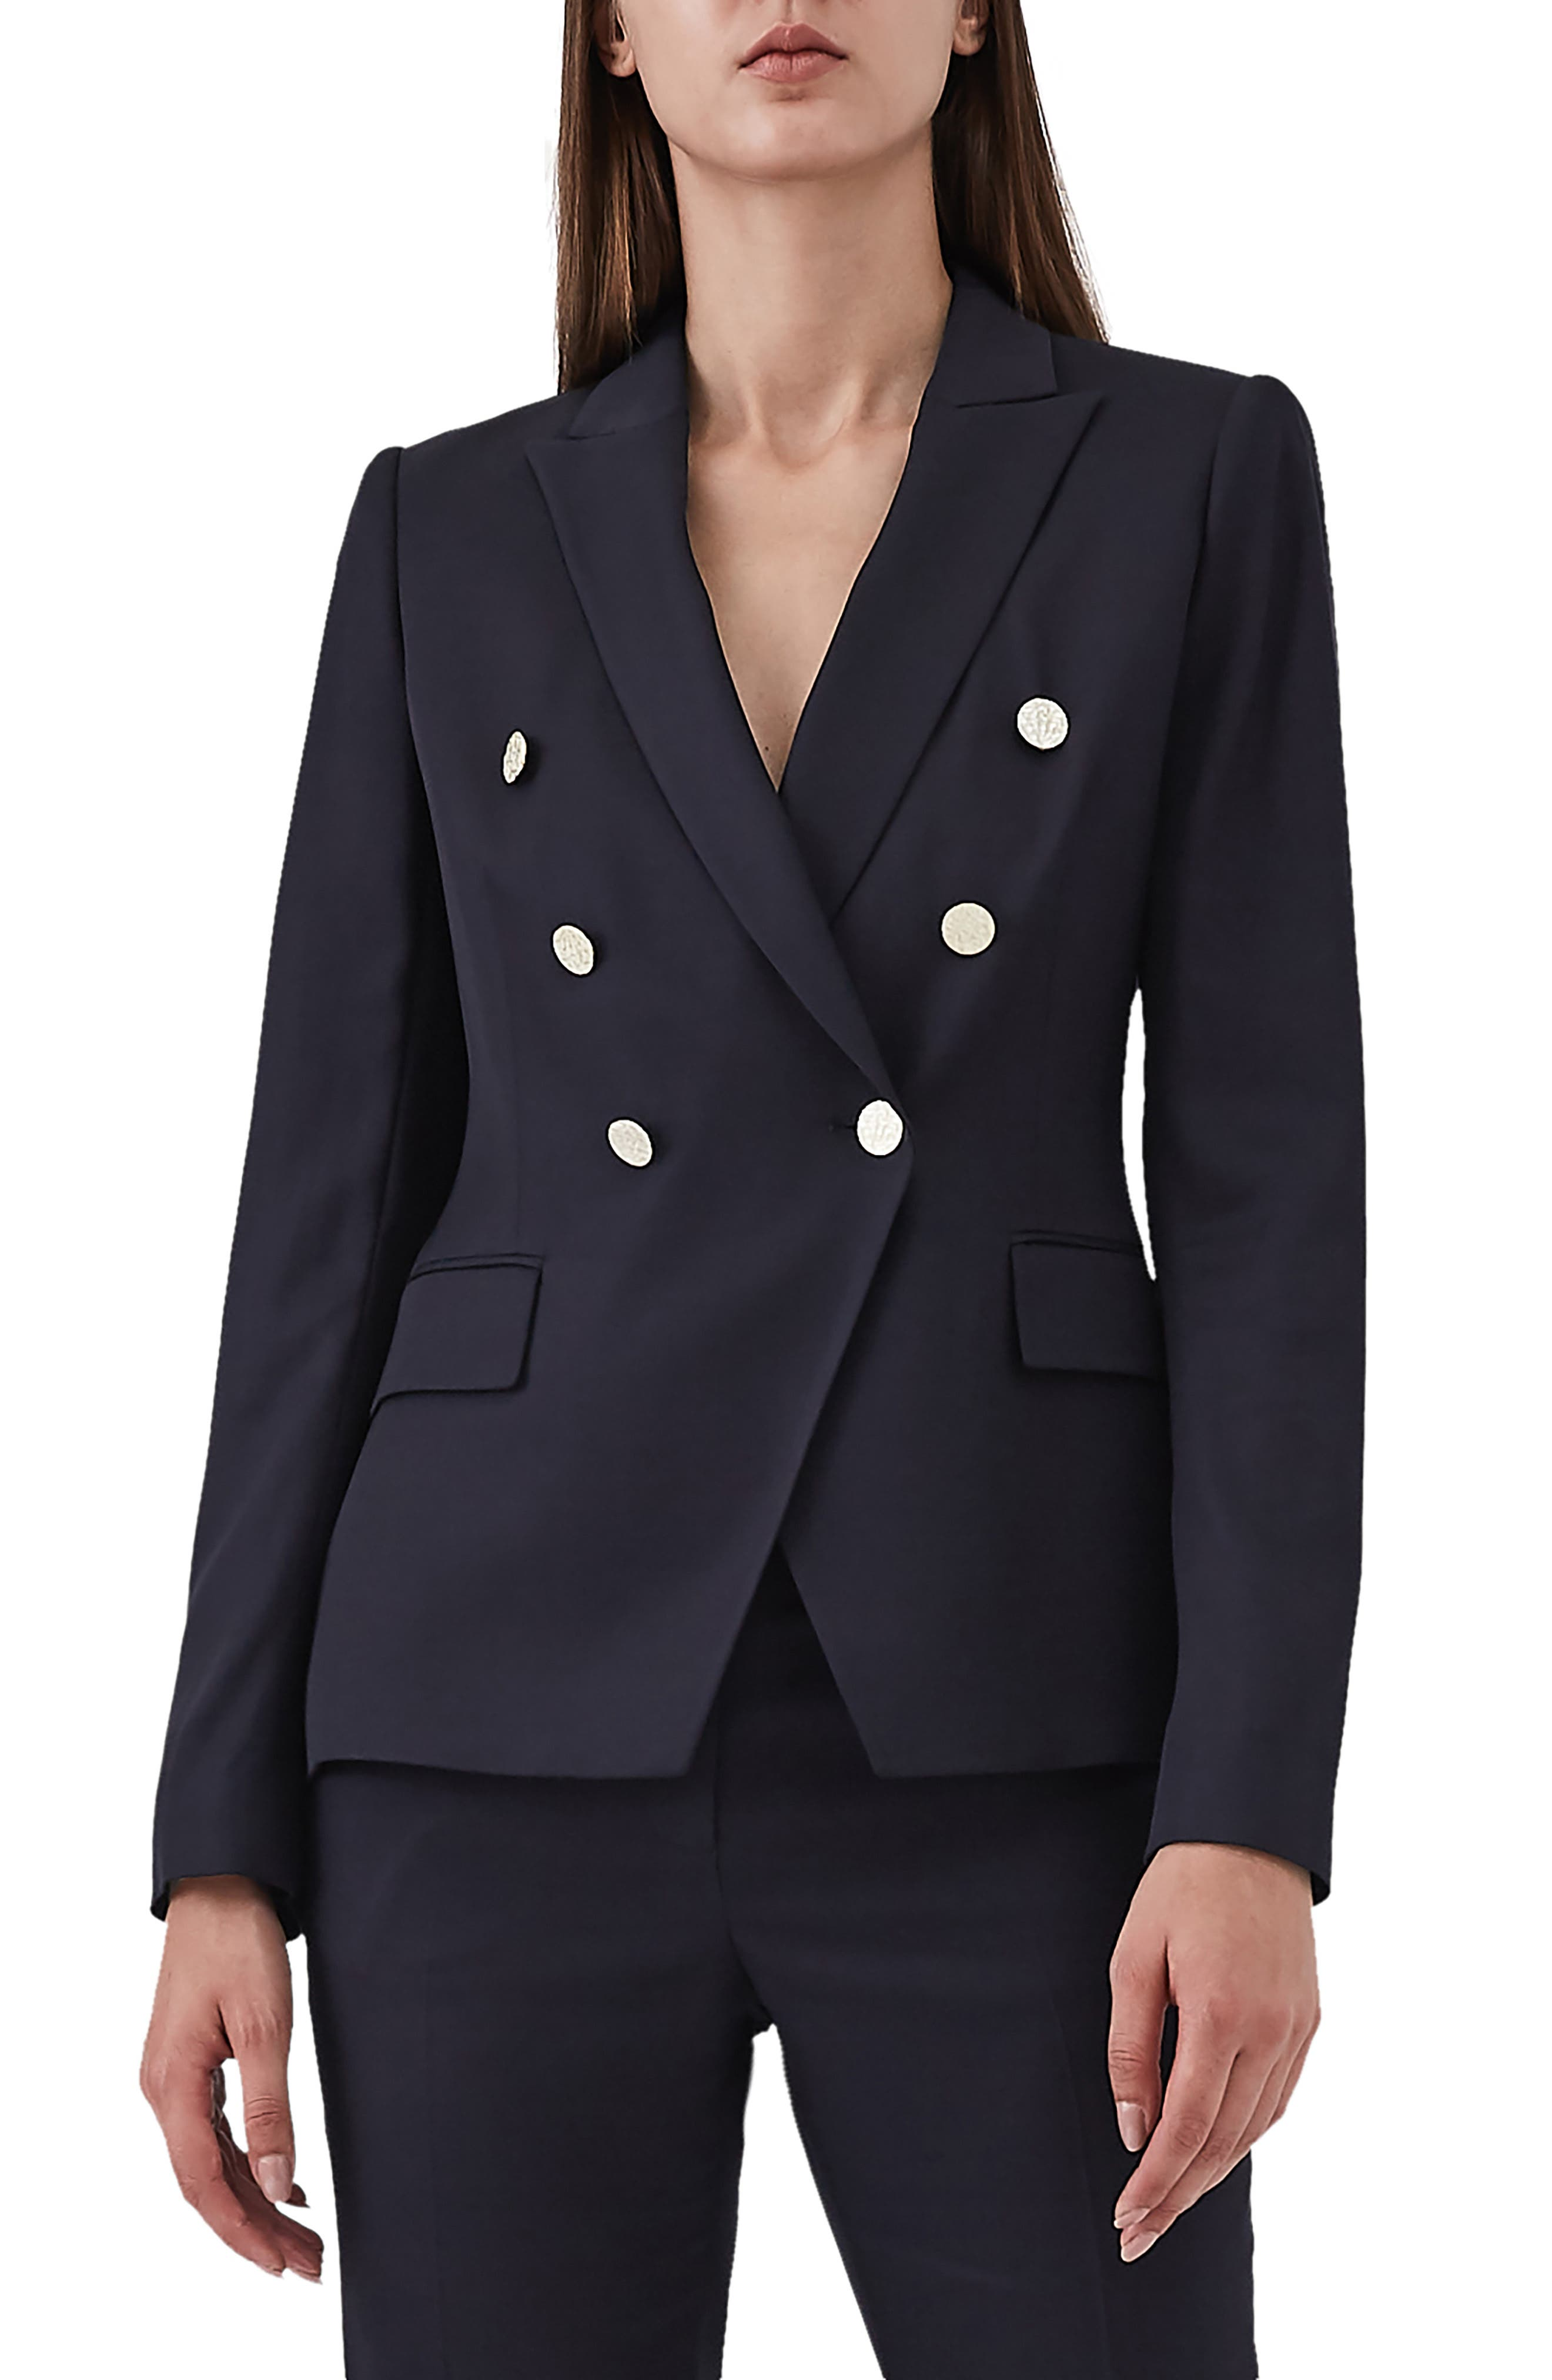 Tally Double Breasted Wool Blend Jacket,                             Main thumbnail 1, color,                             410